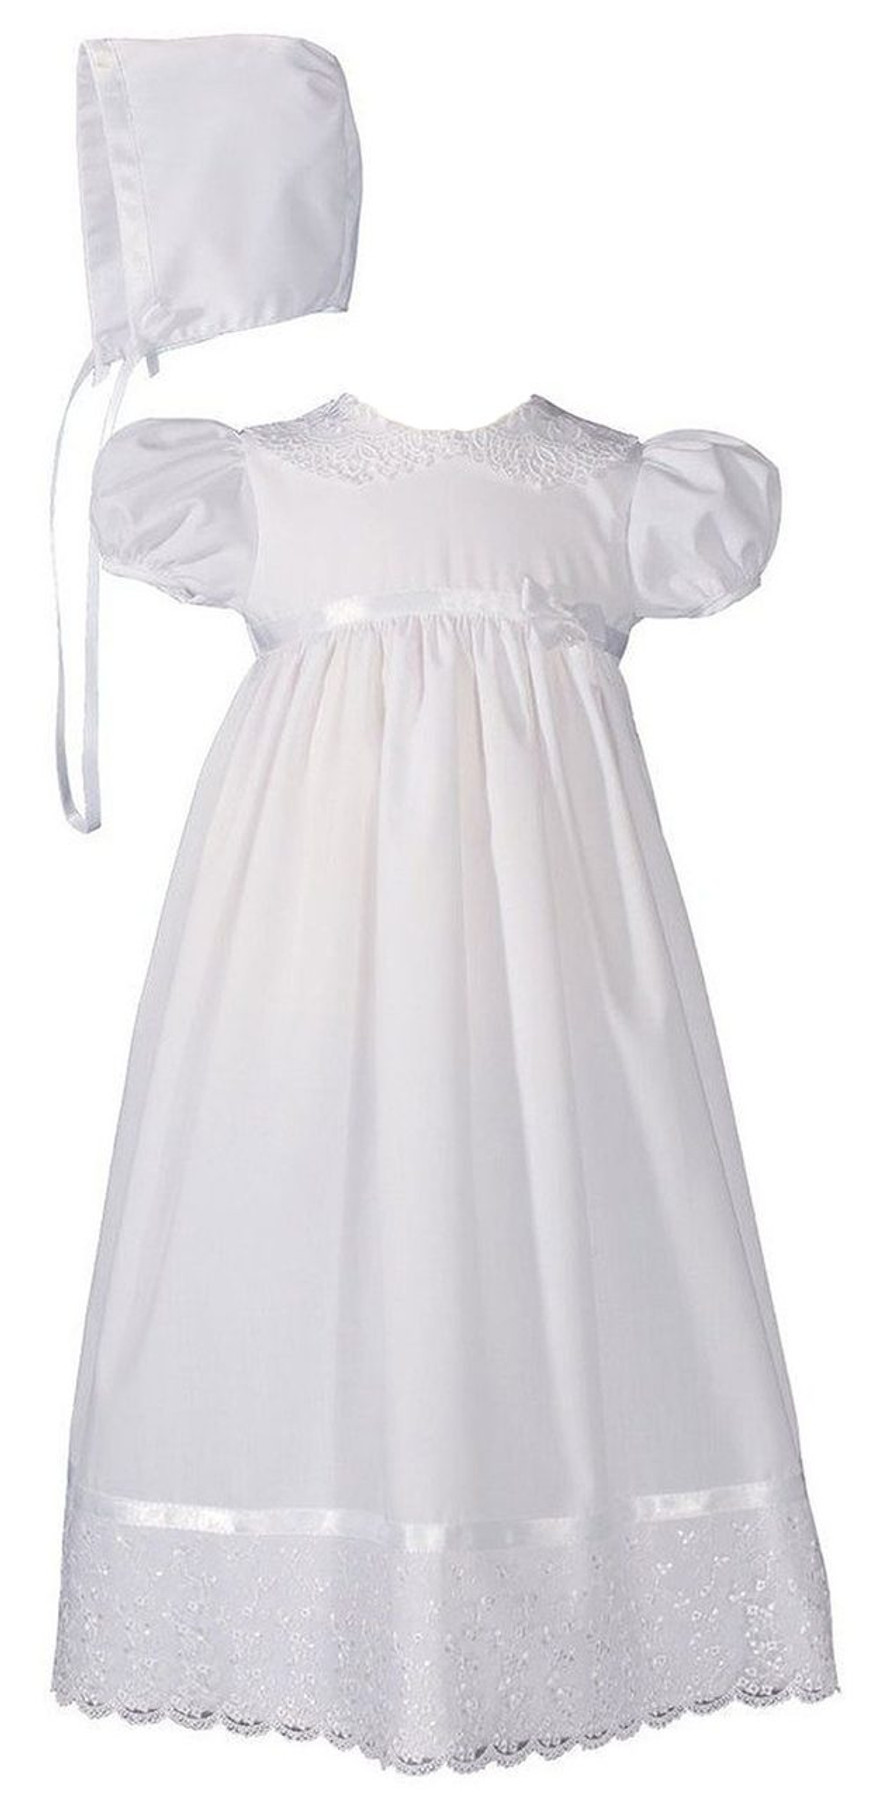 7951585a9288 Christening Gown and Baptism Dress with Lace Collar and Hem